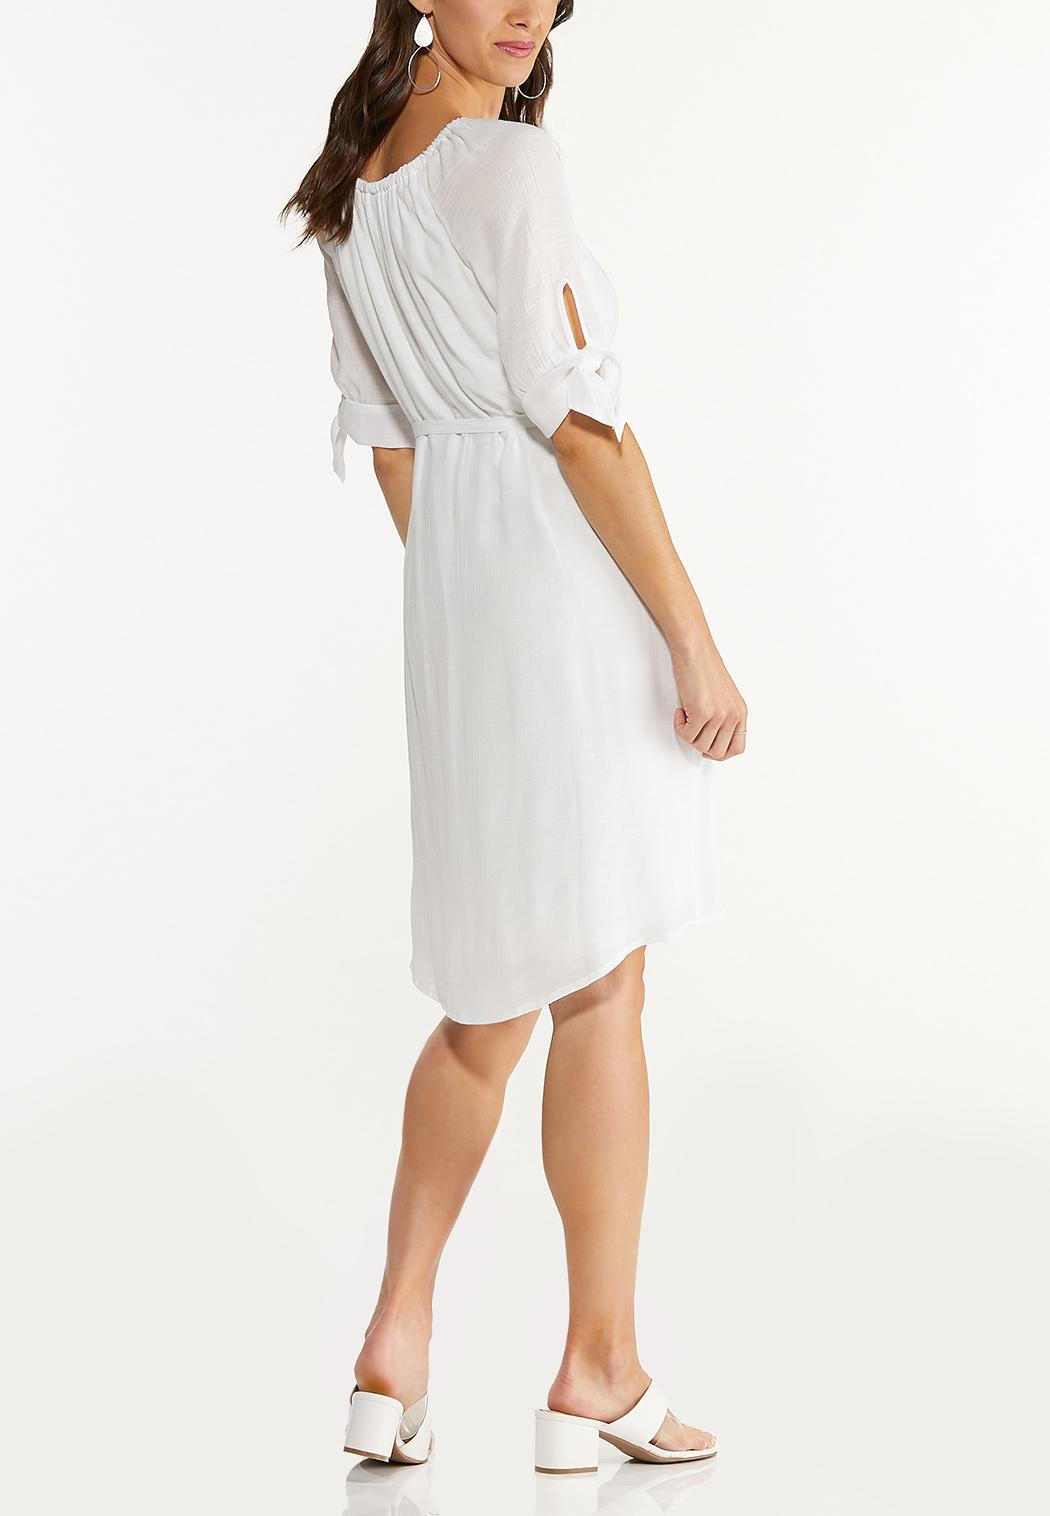 Plus Size Belted White Dress (Item #44591710)